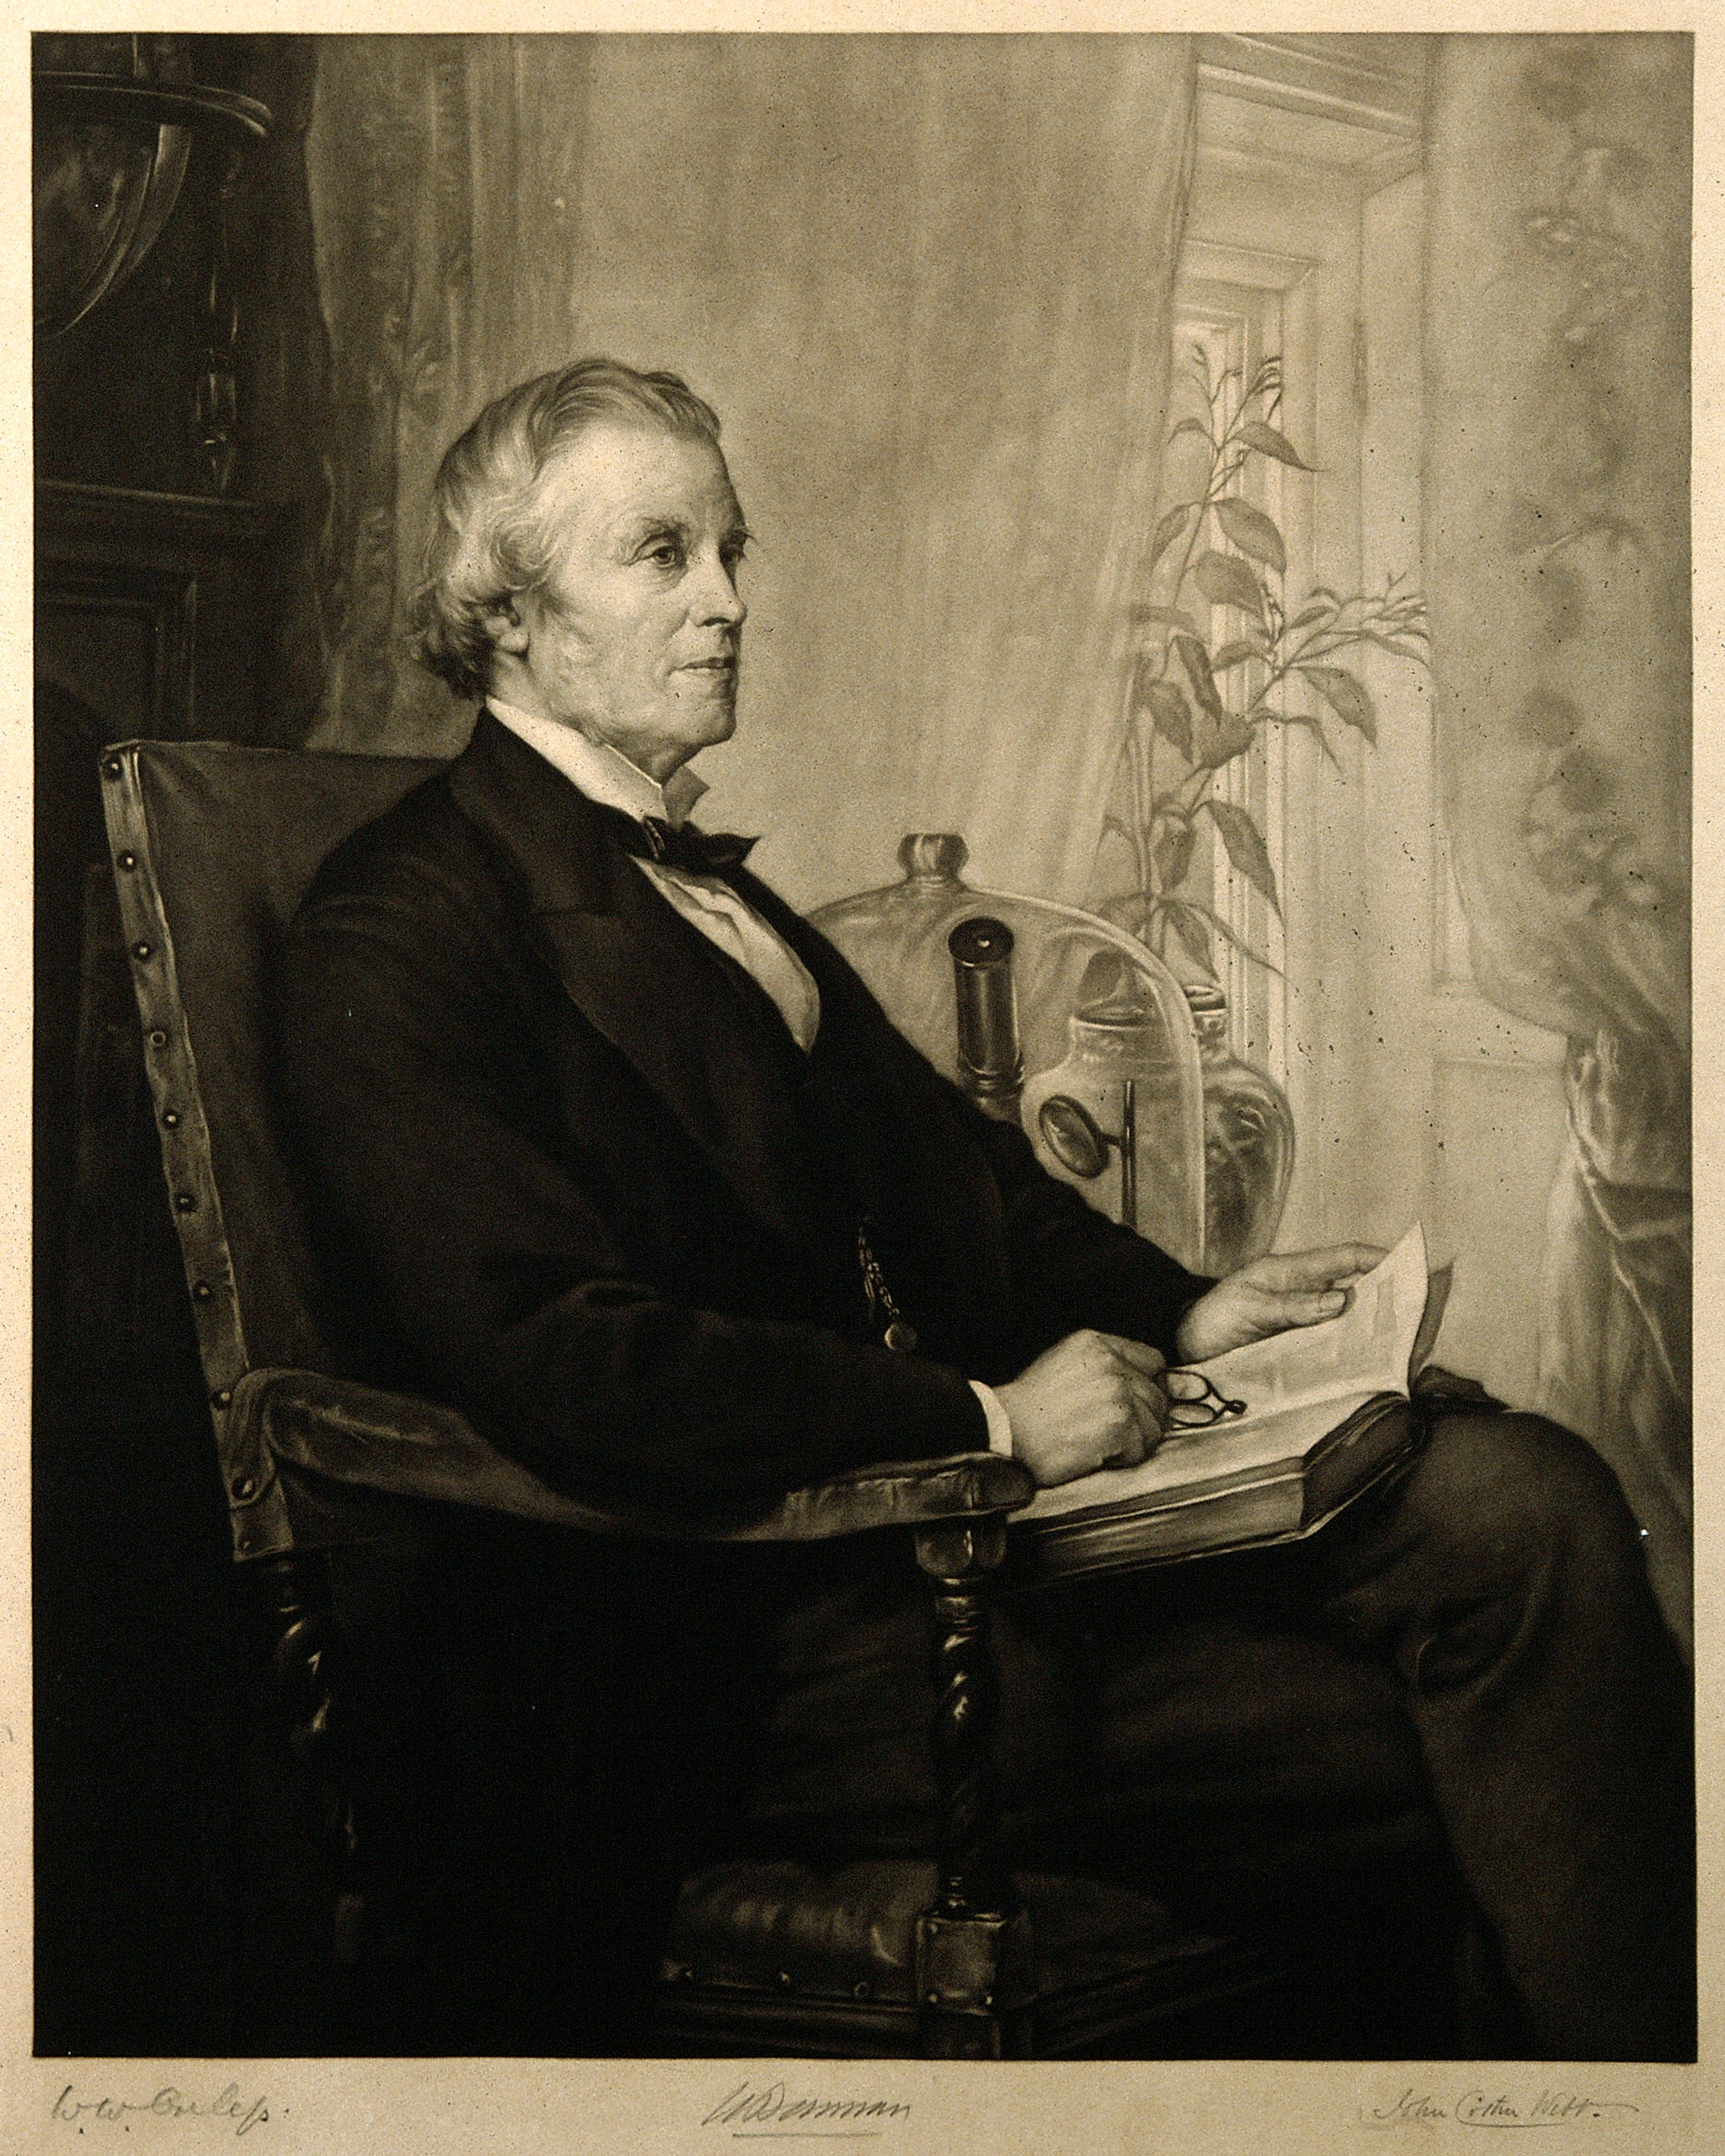 File:Sir William Bowman. Mezzotint by J. C. Webb after W. W. Oule Wellcome  V0006456.